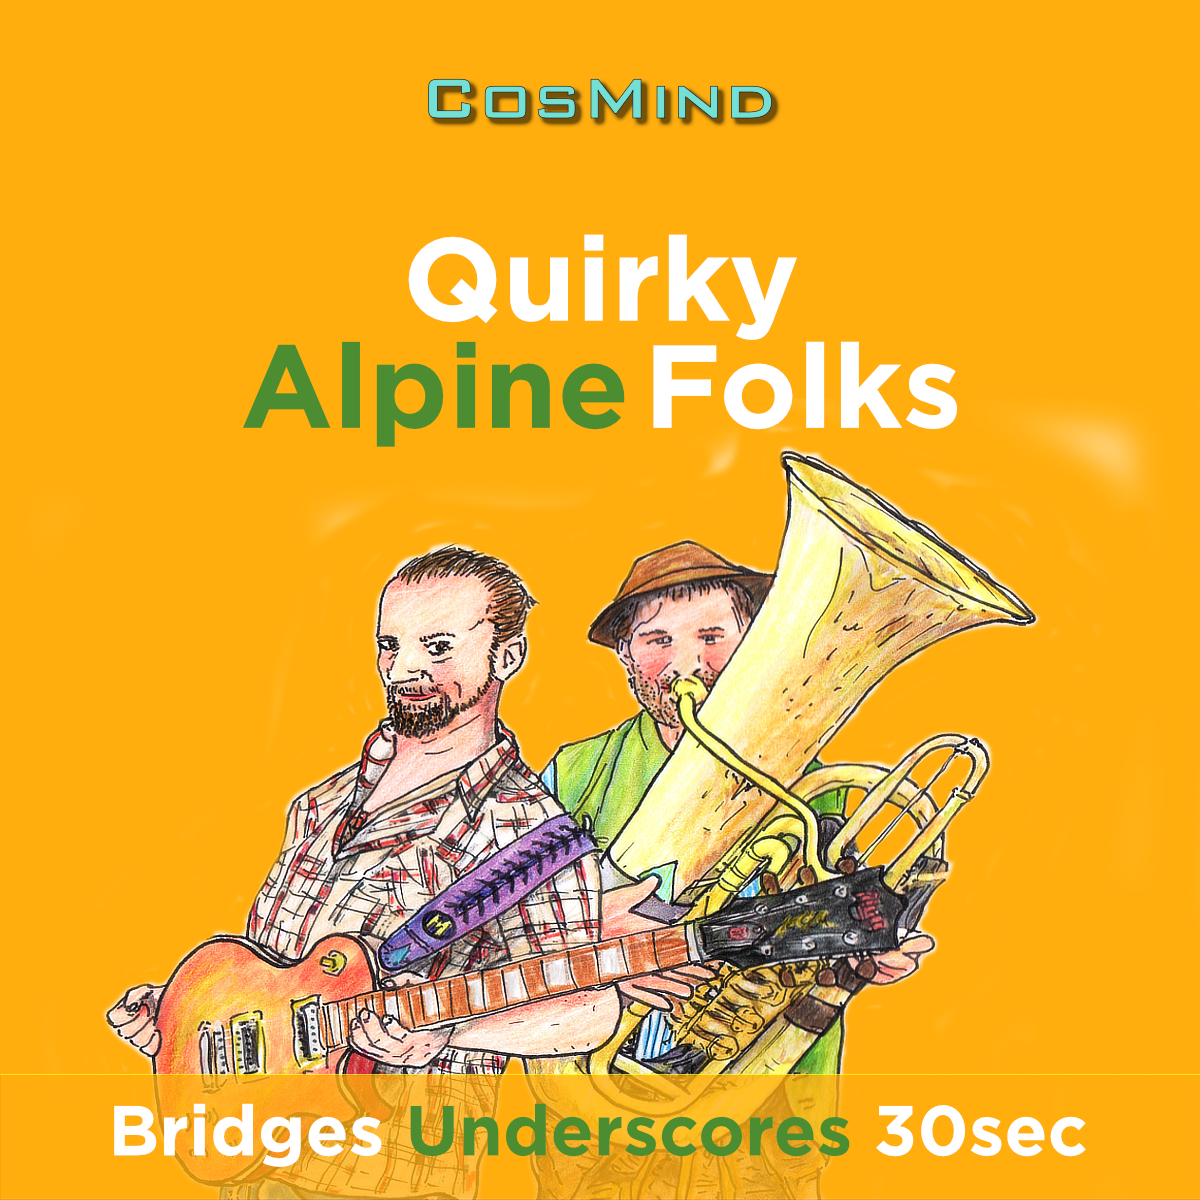 Quirky Alpine Folks - Bridges - Underscores - 30sec